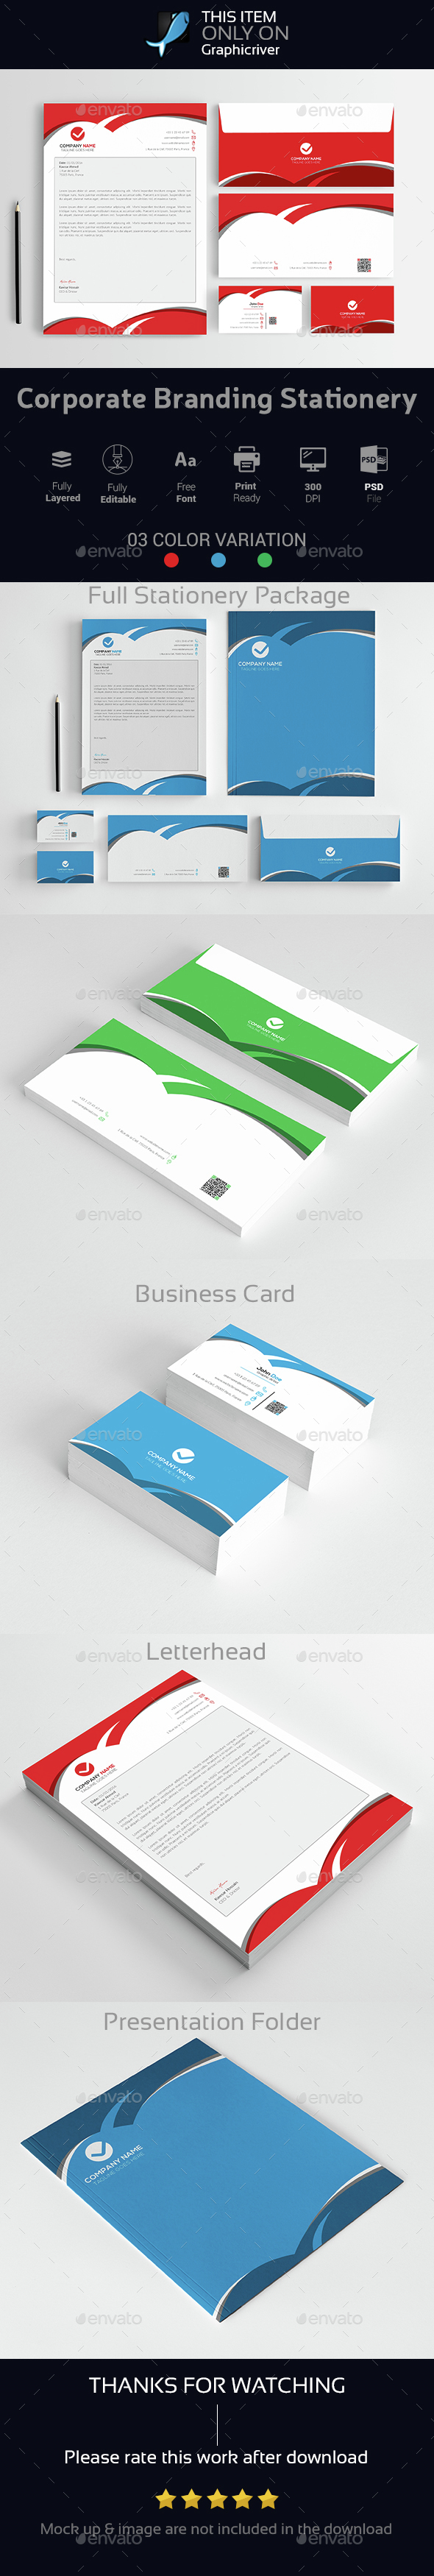 Corporate Branding Stationery Vol-08 - Stationery Print Templates